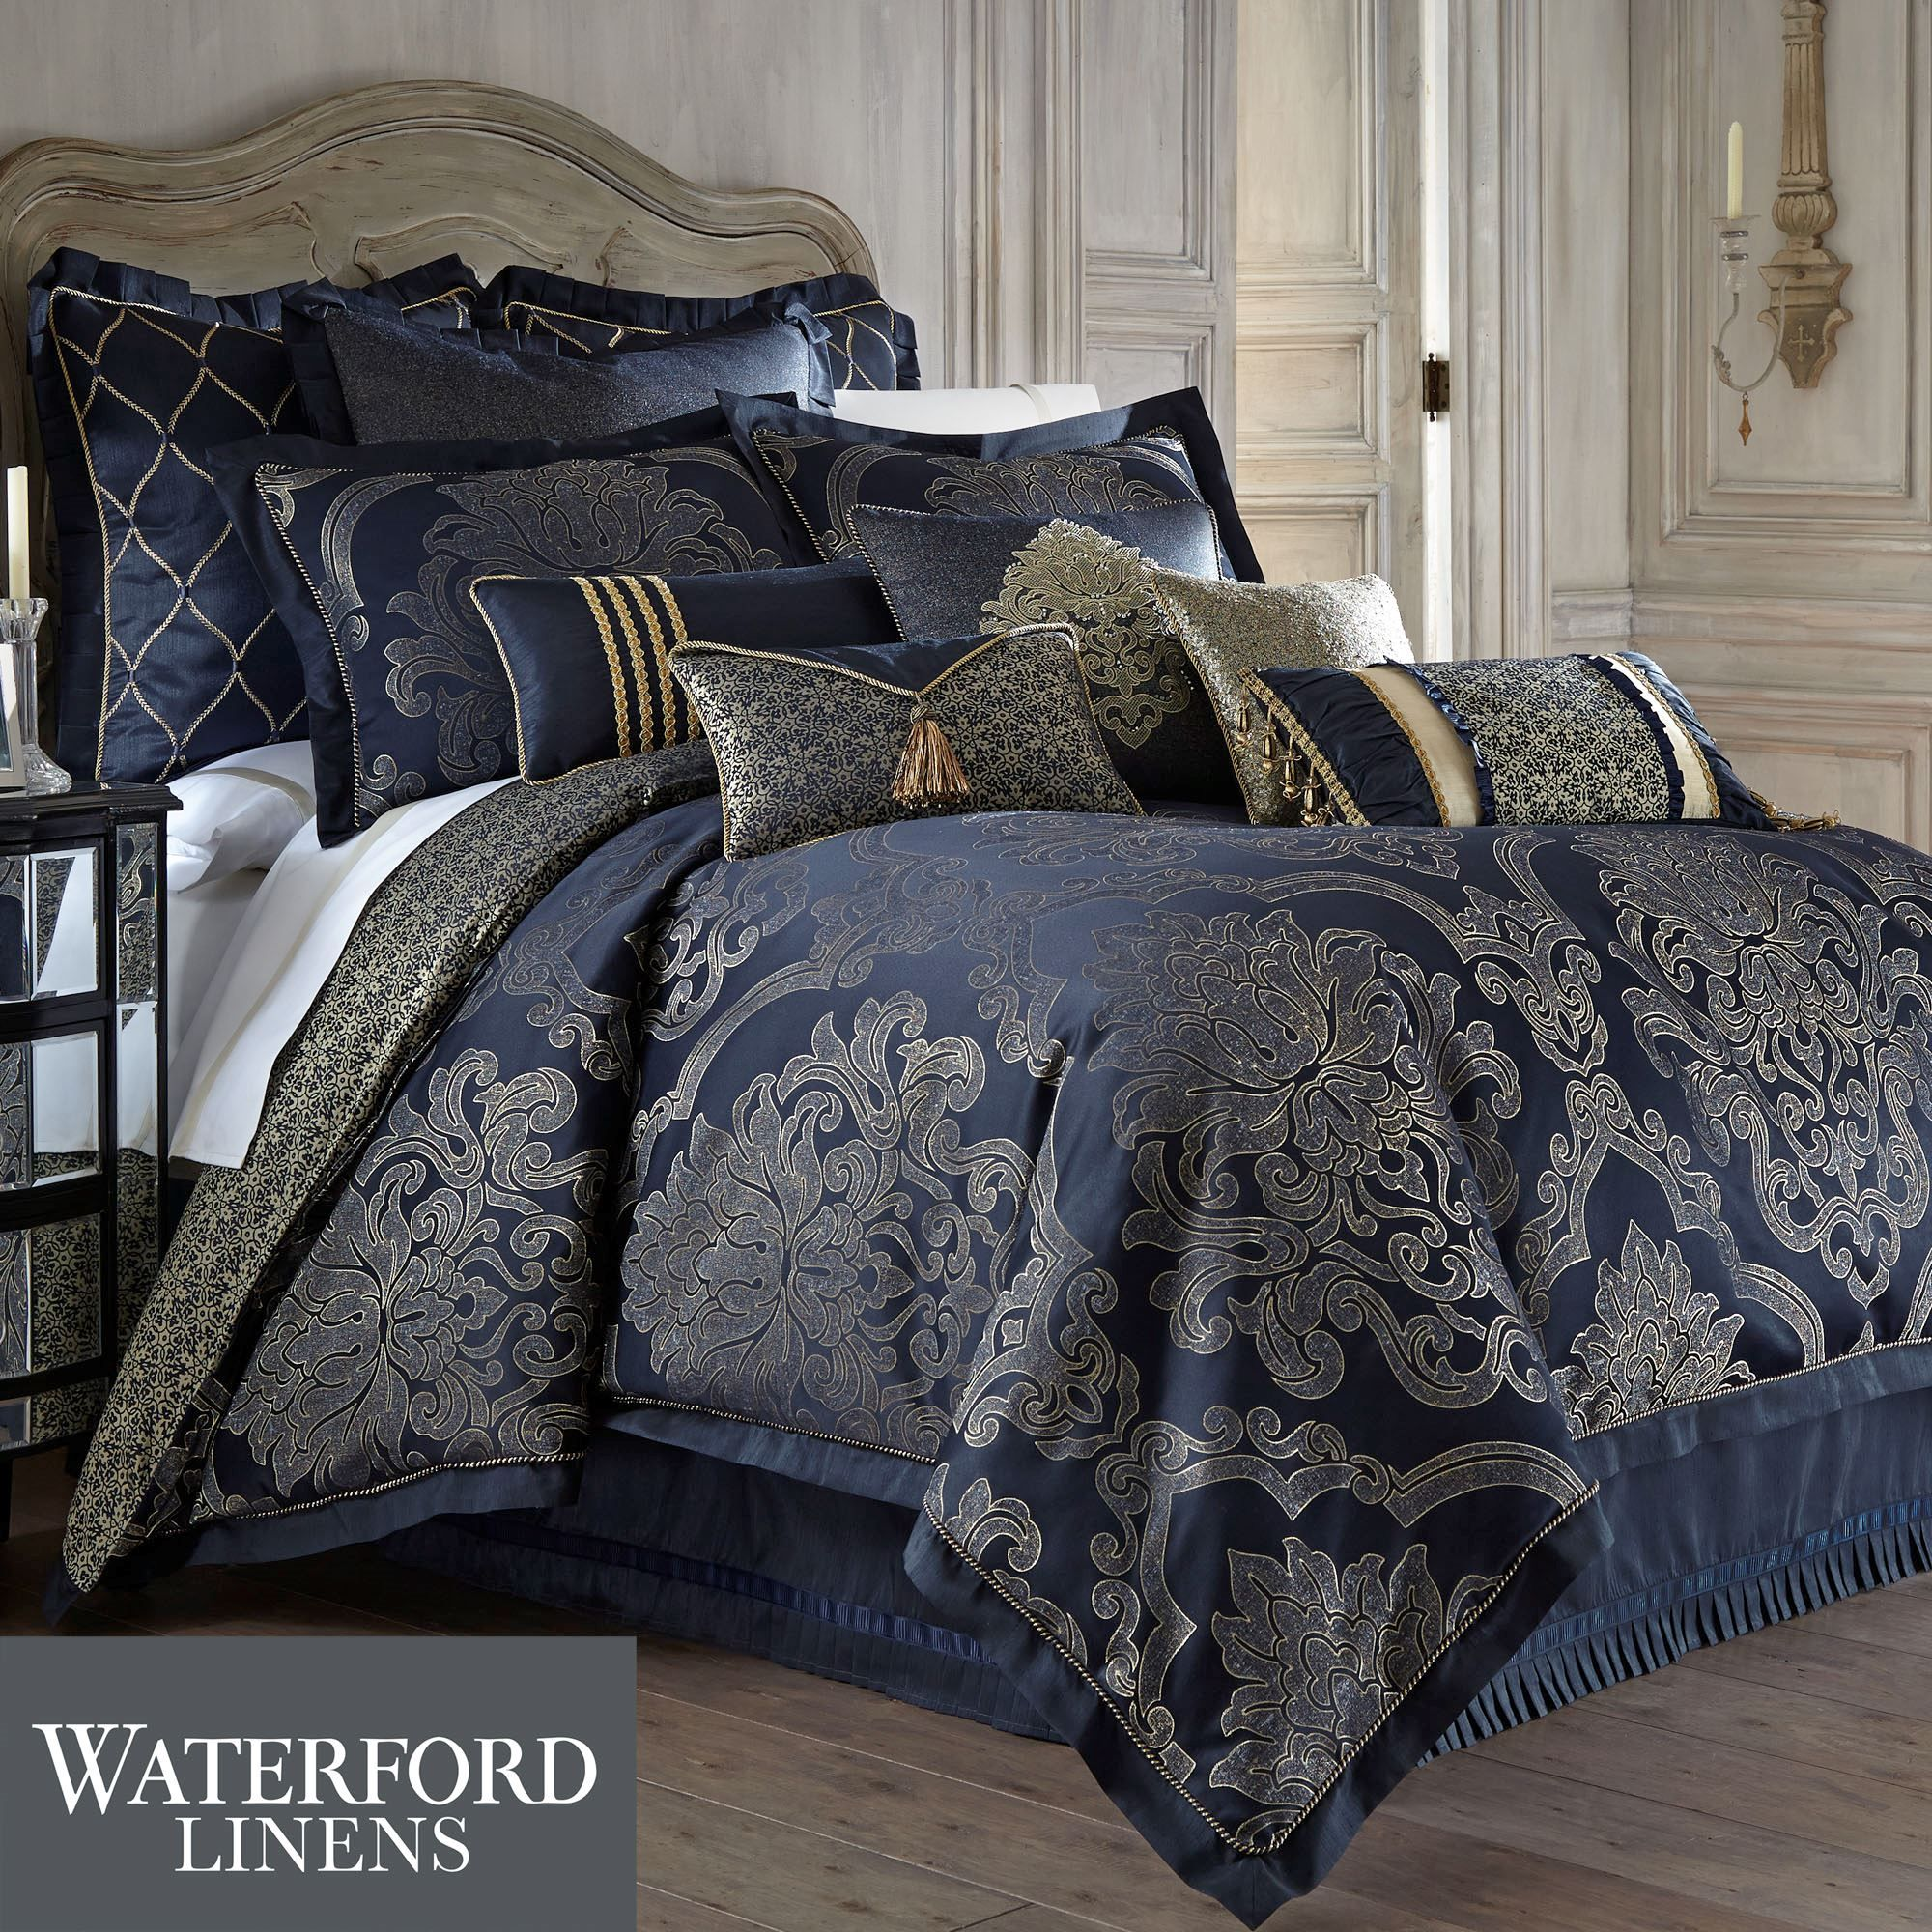 piece set shipping bedding overstock free product linen today marchella comforter gathered bath vcny